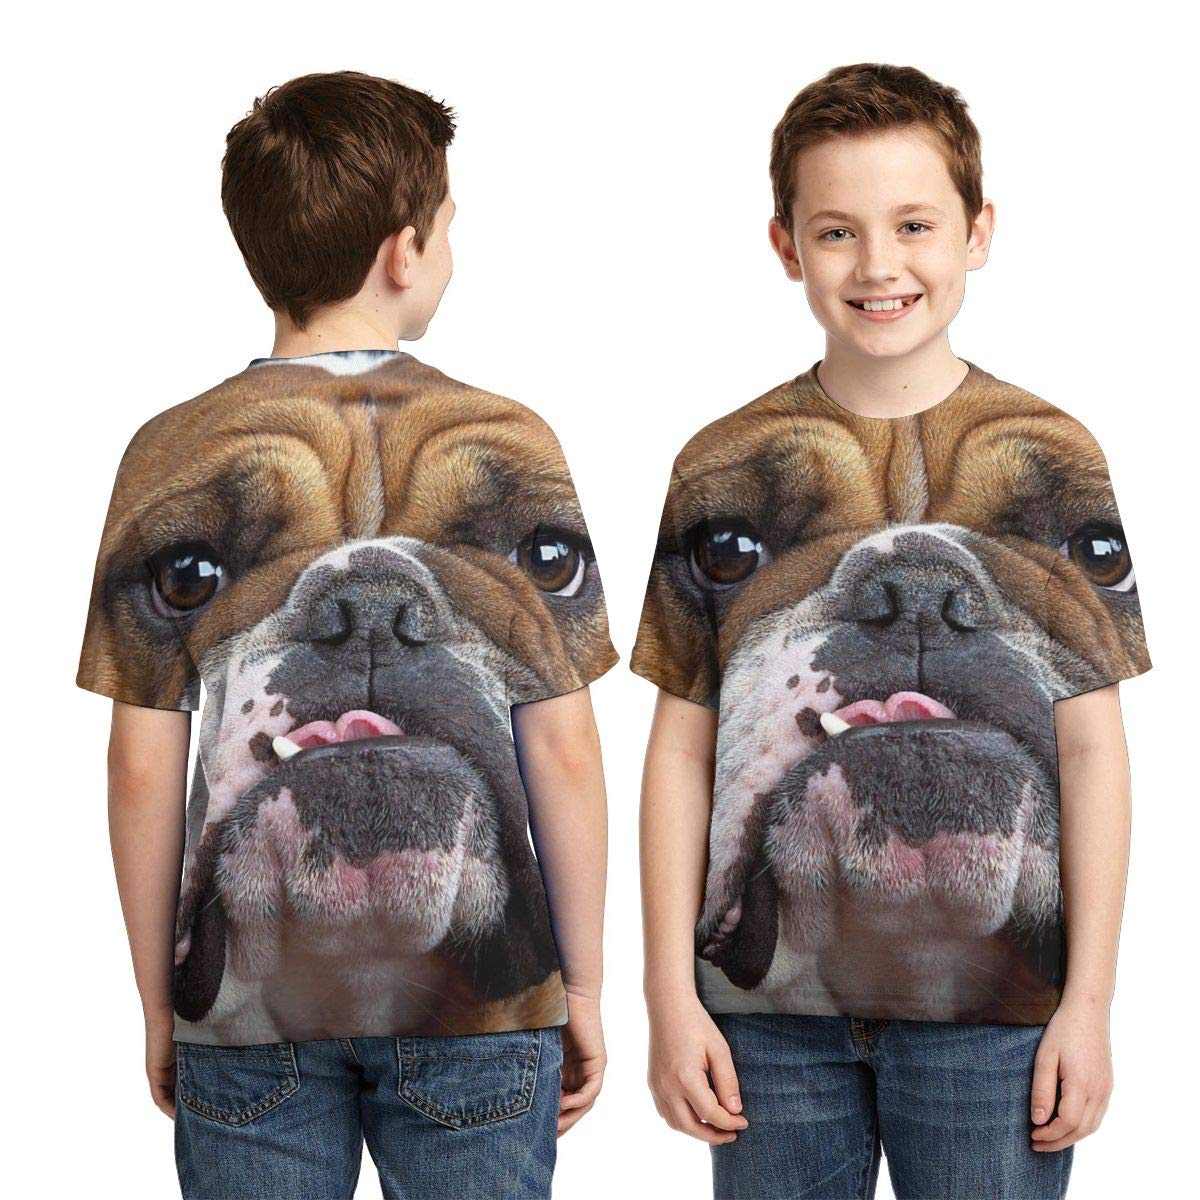 Casual Blouse Clothes Vy32jg-2 Short Sleeve Bulldog Face T-Shirts for Children XS-XL